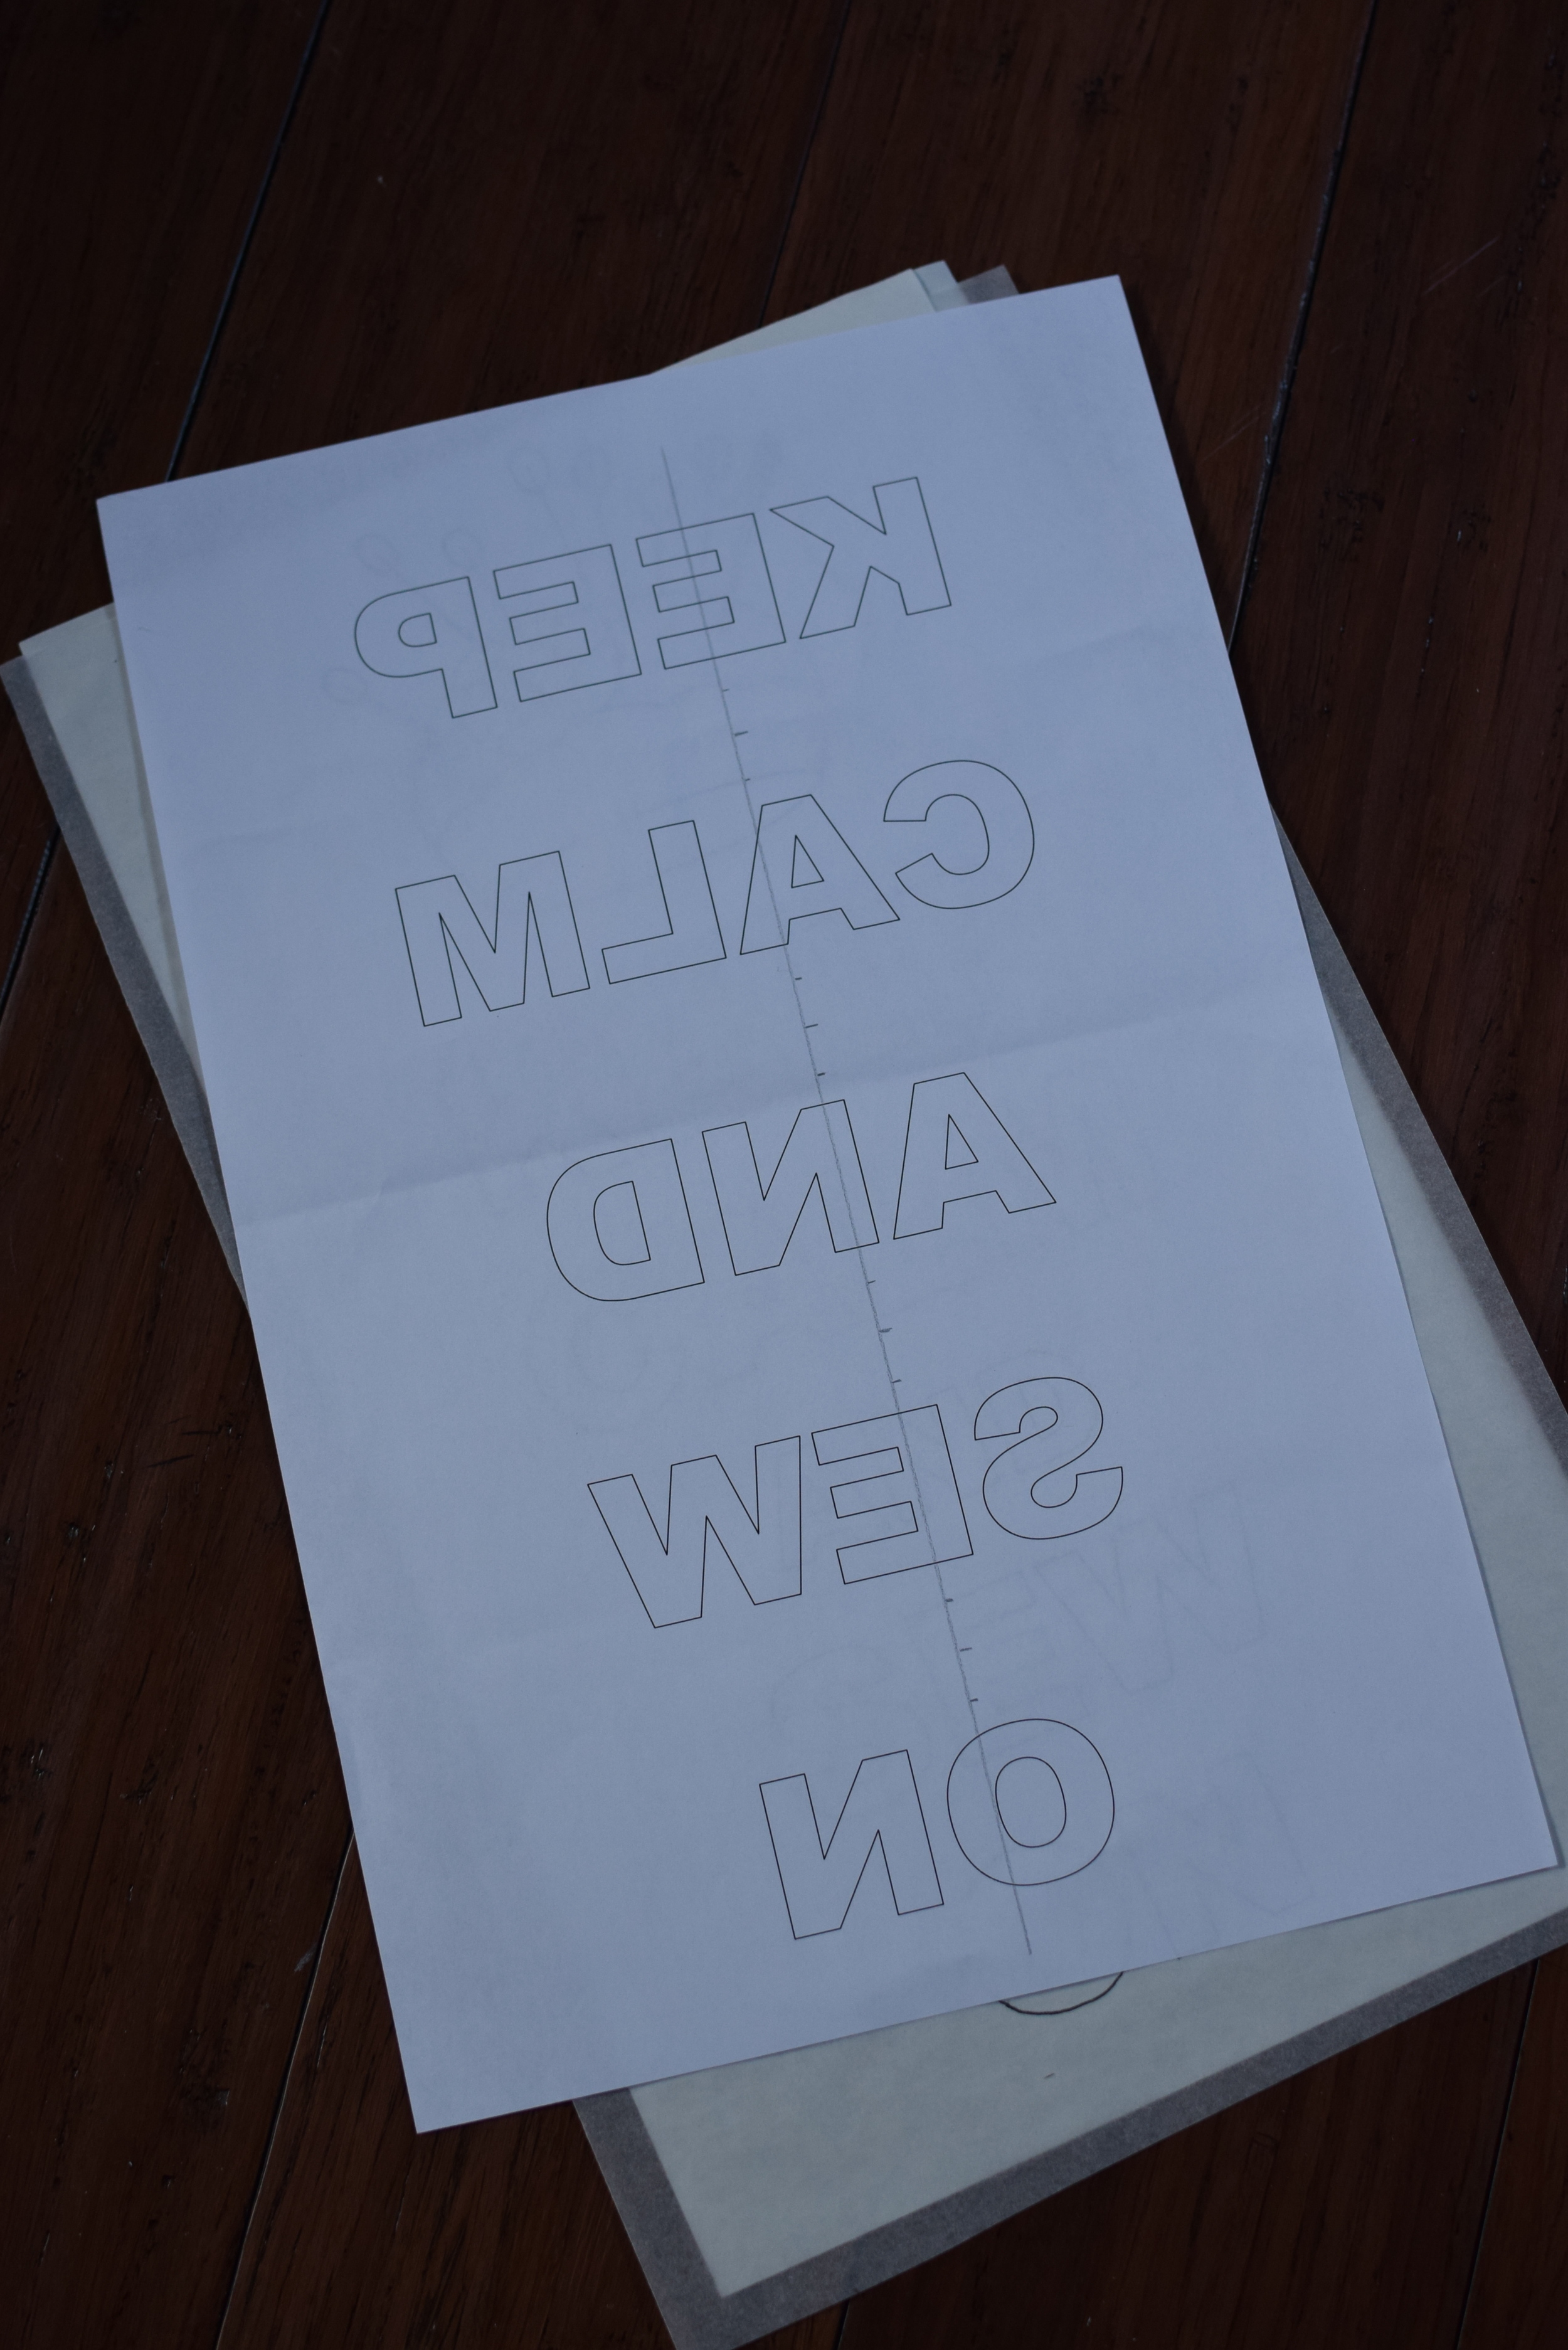 Mirror-imaged letters can be printed directly from Word.